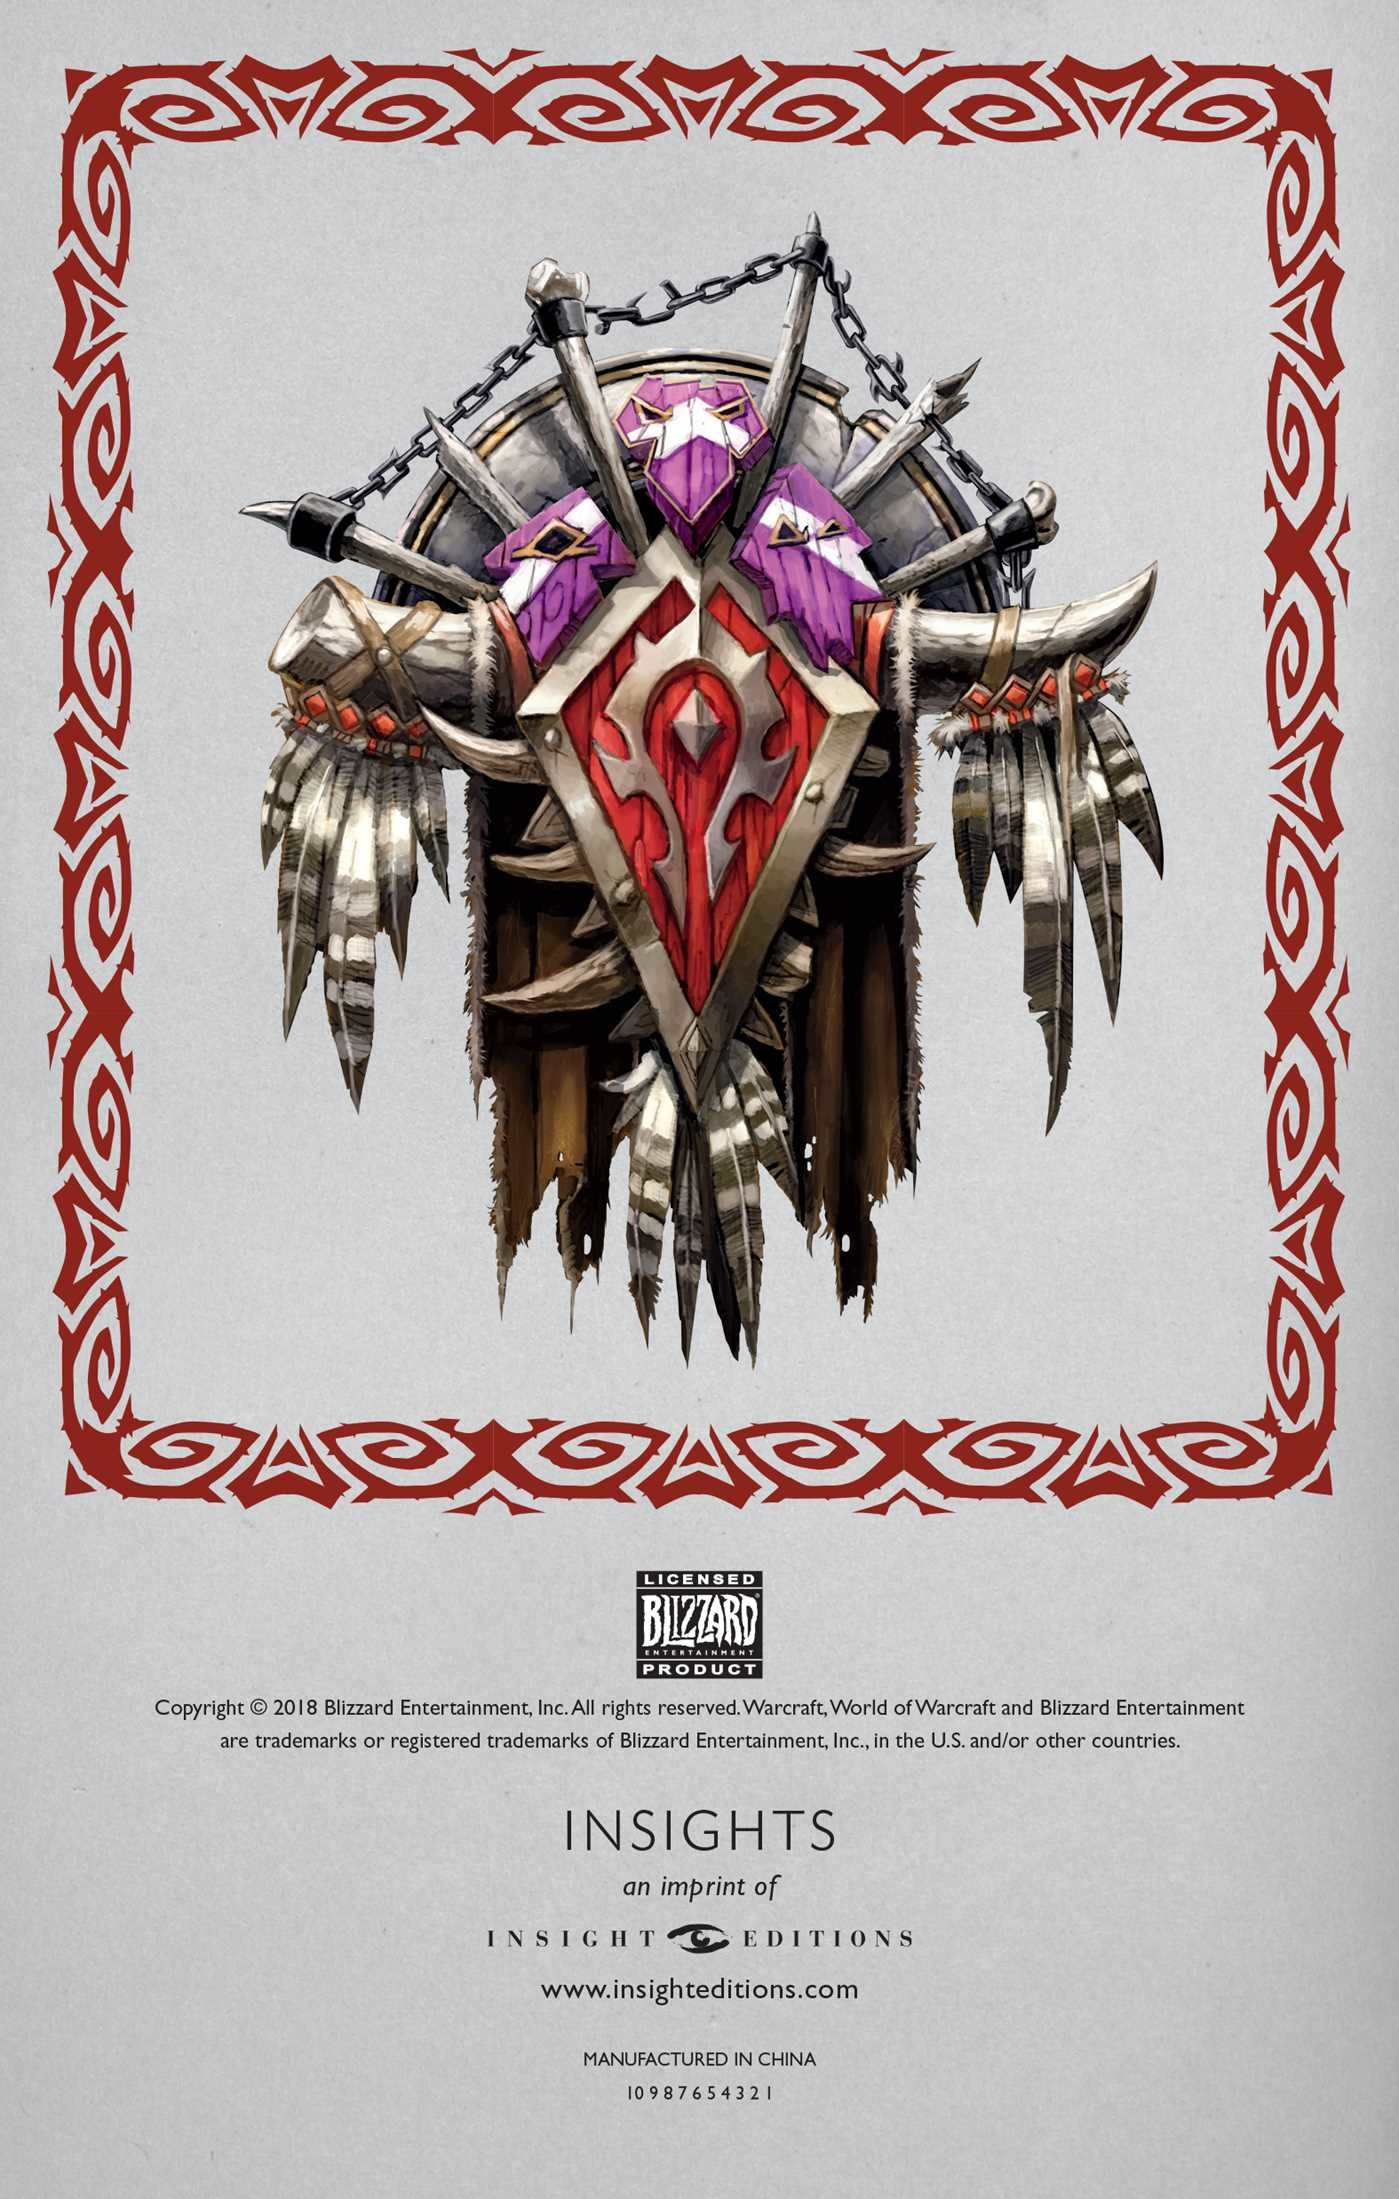 World of warcraft horde hardcover ruled journal 9781683833260.in01